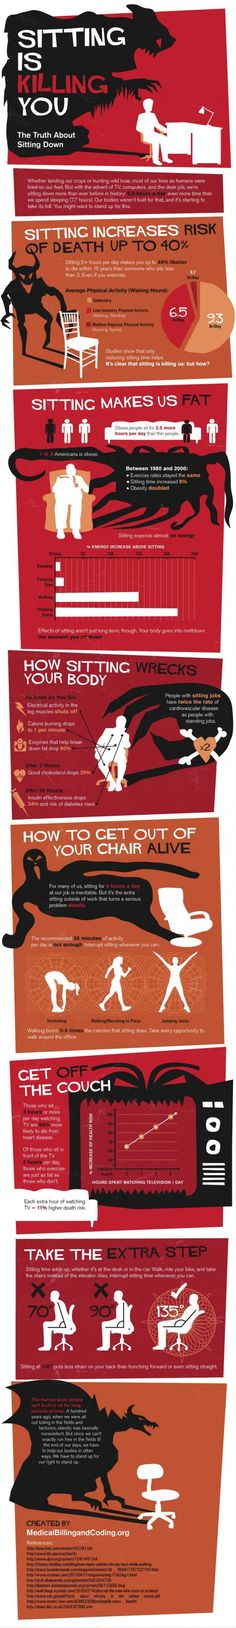 sitting is killing you...